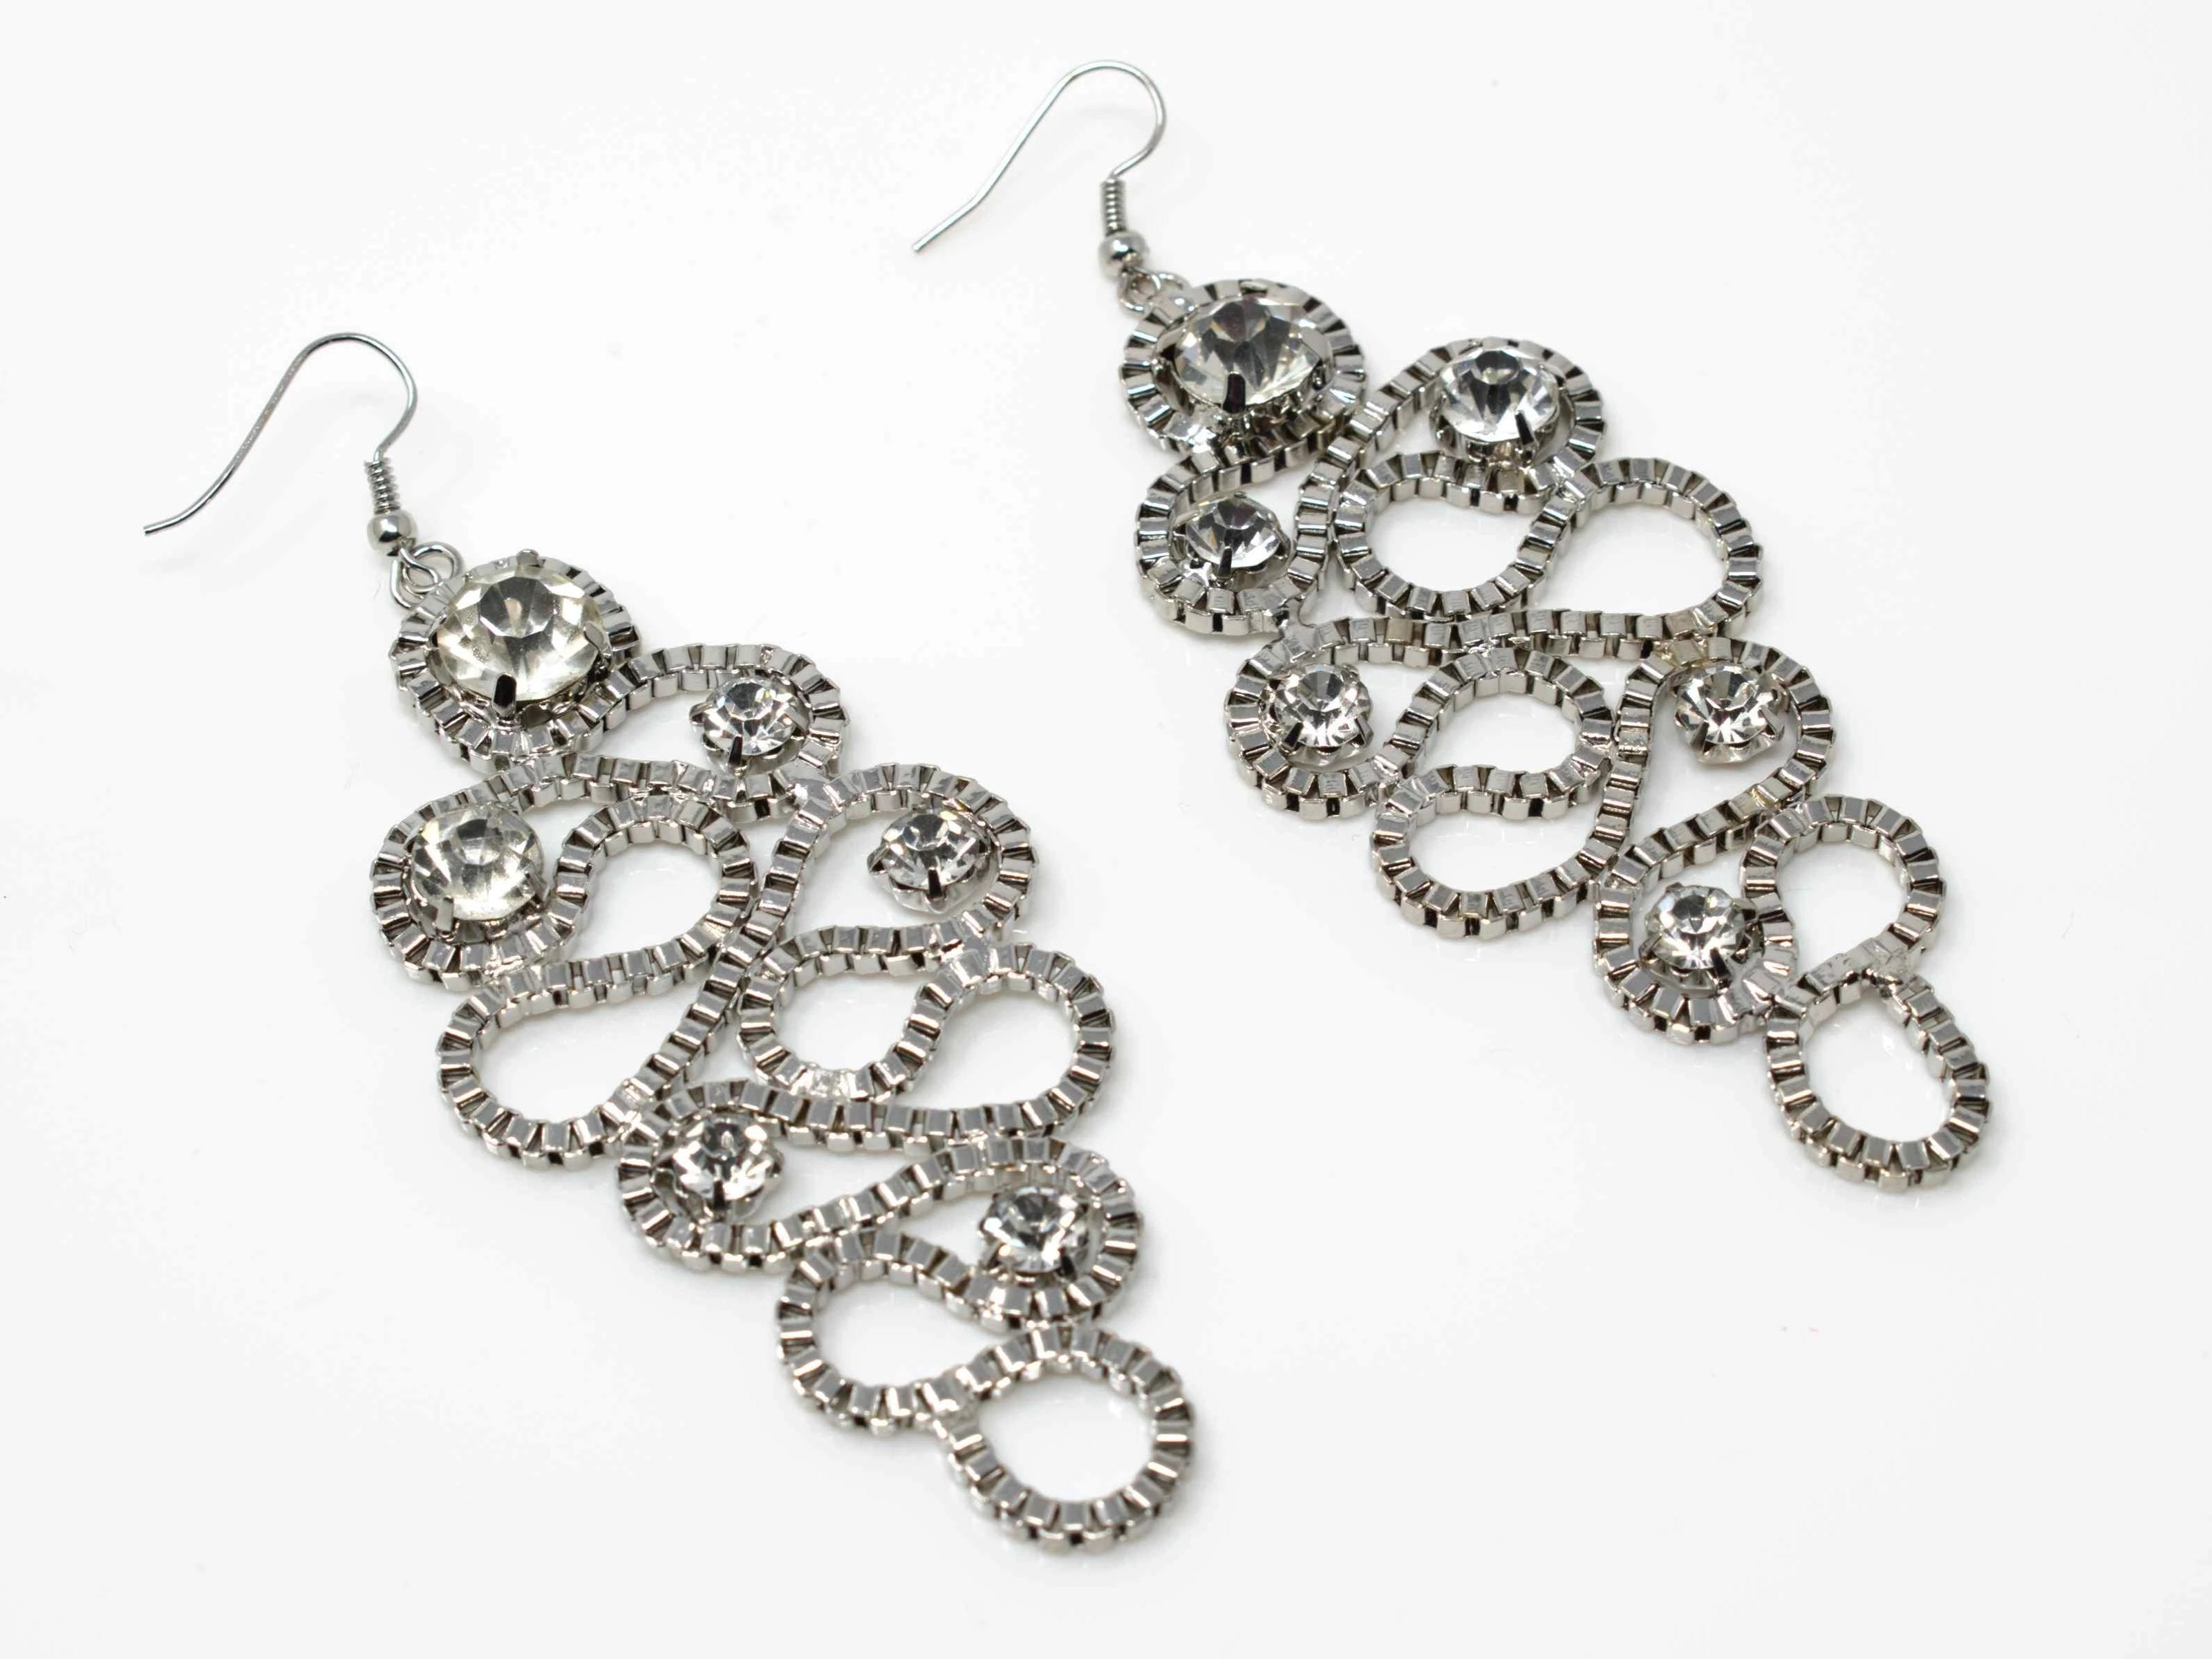 Sonia Silver Chandelier Earrings